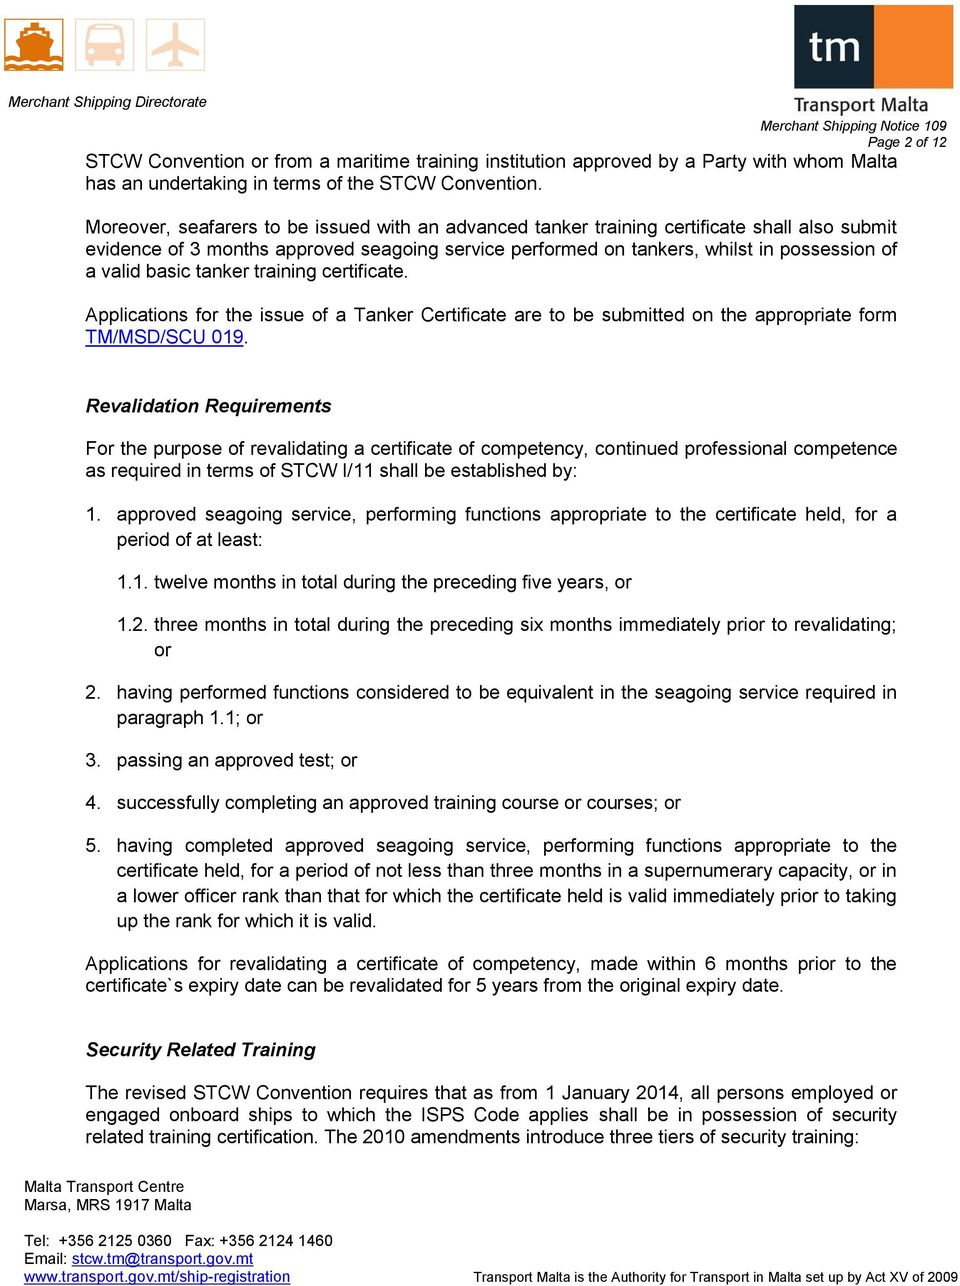 basic tanker training certificate. Applications for the issue of a Tanker Certificate are to be submitted on the appropriate form TM/MSD/SCU 019.